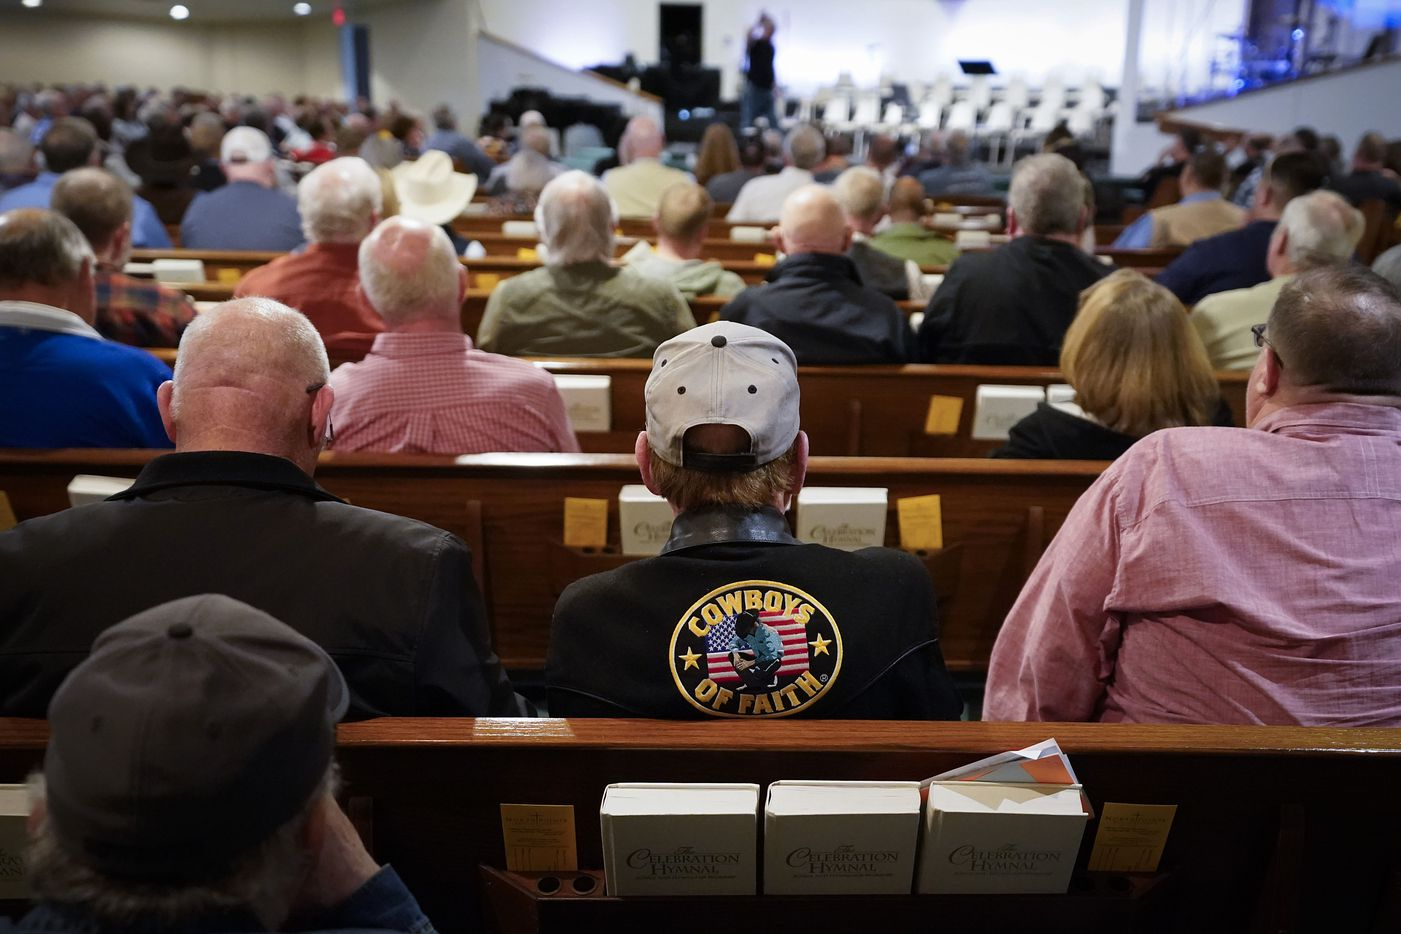 A full church listens as Jimmy Meeks speaks during a  church safety seminar at North Pointe Baptist Church on Sunday, Jan. 26, 2020, in Hurst, Texas.